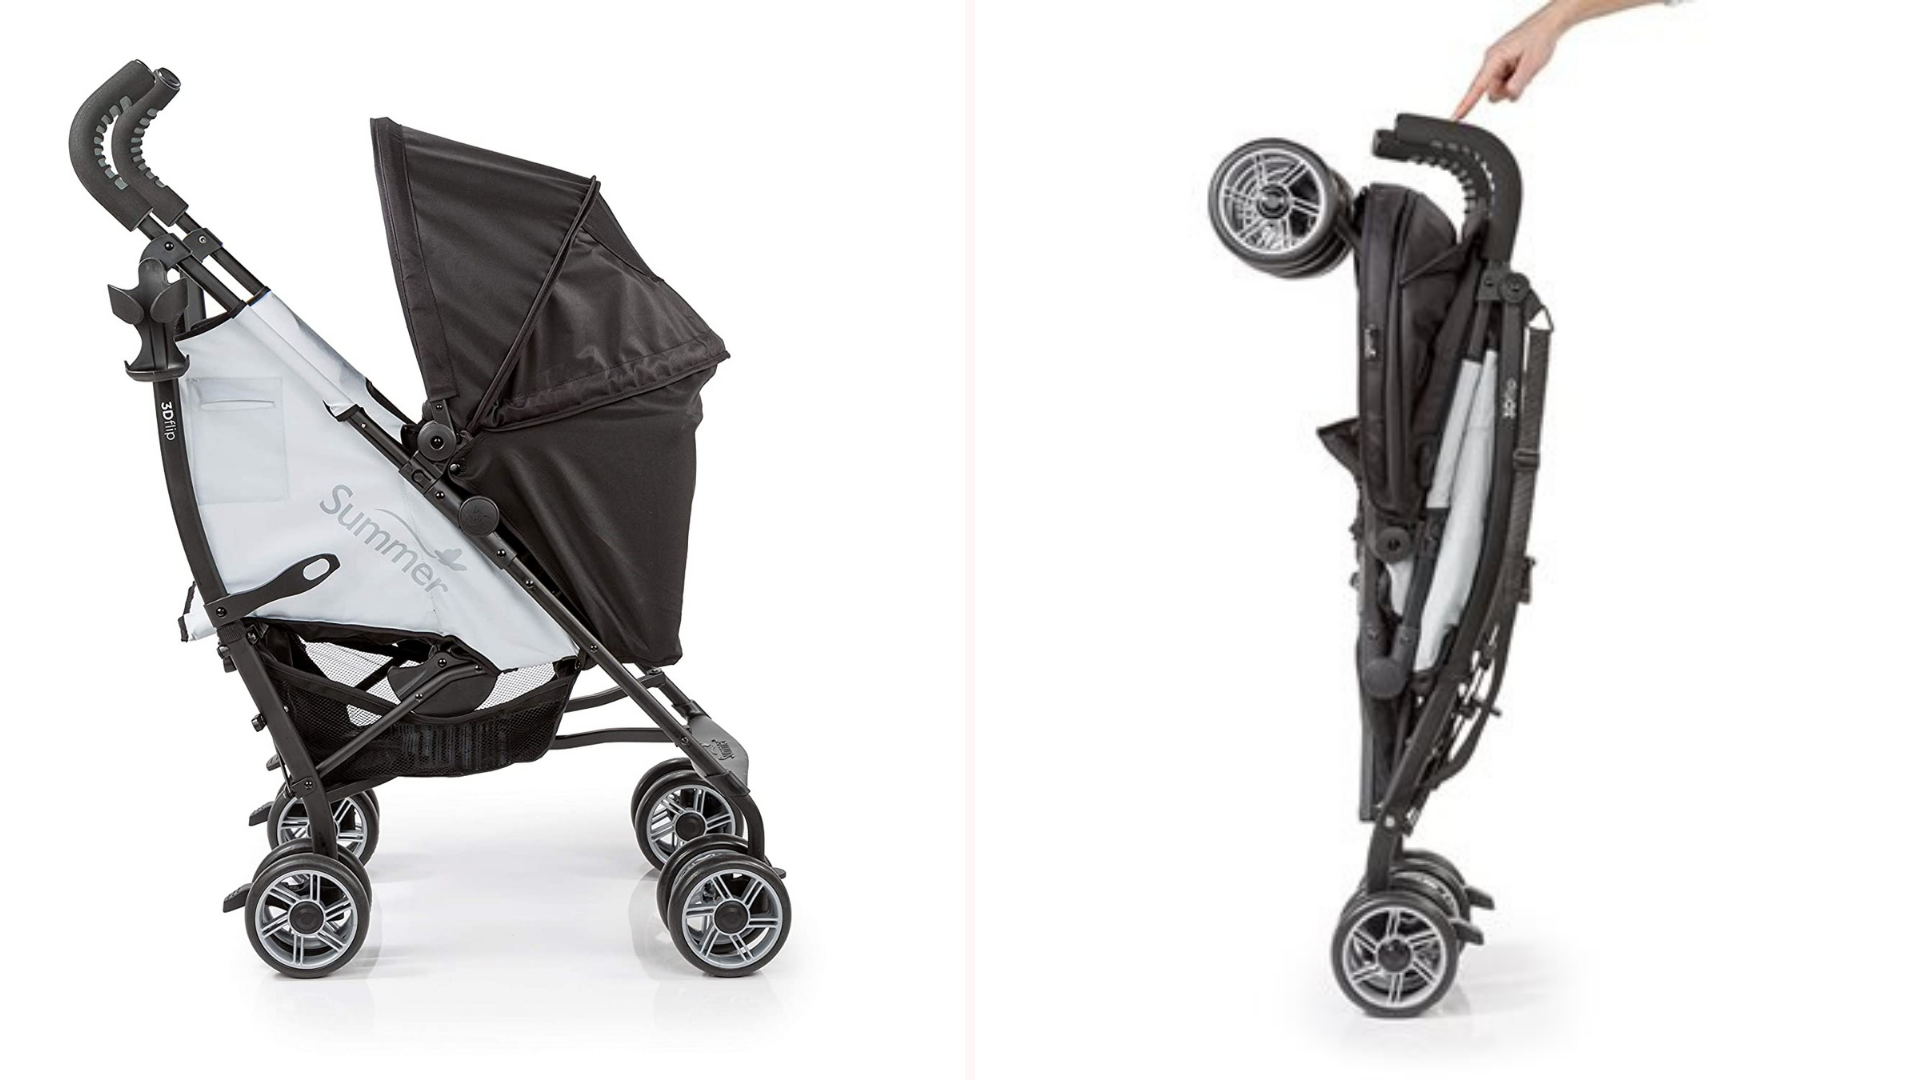 A Summer Infant Flip 3D stroller in the open and closed positions.